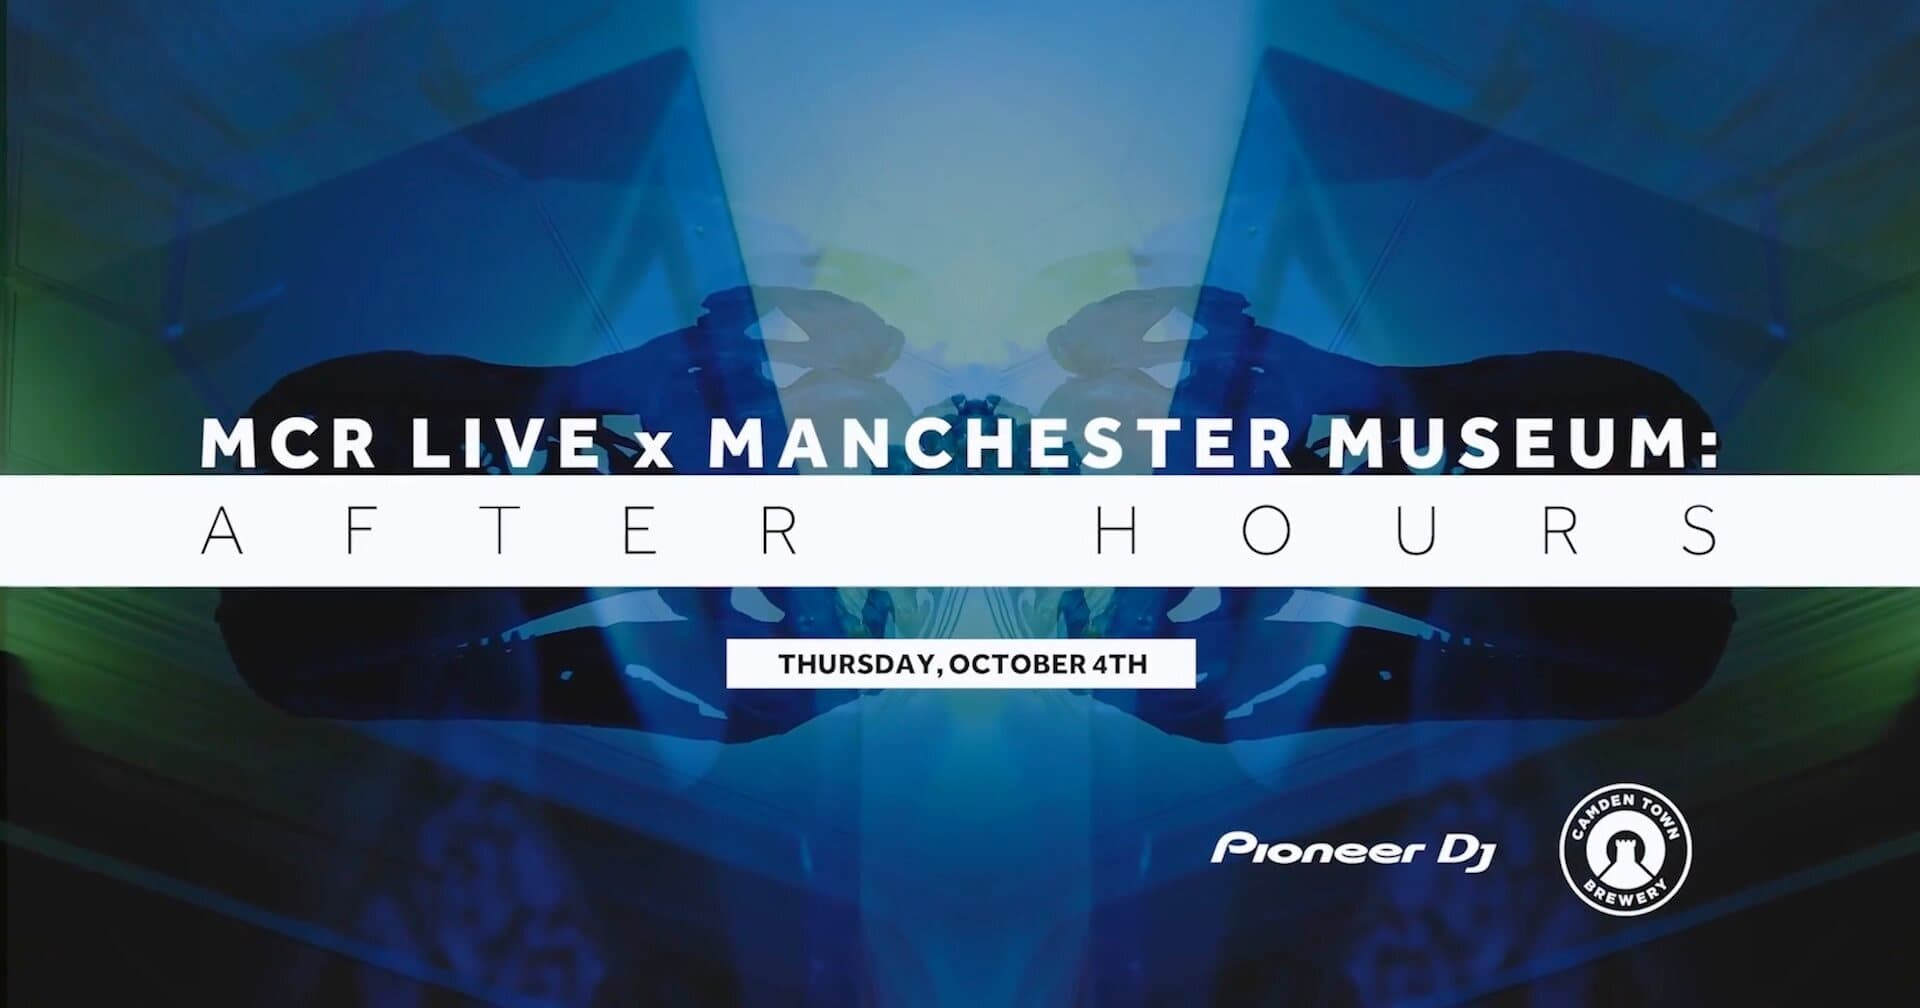 MCR Live event with Pioneer at Manchester Museum